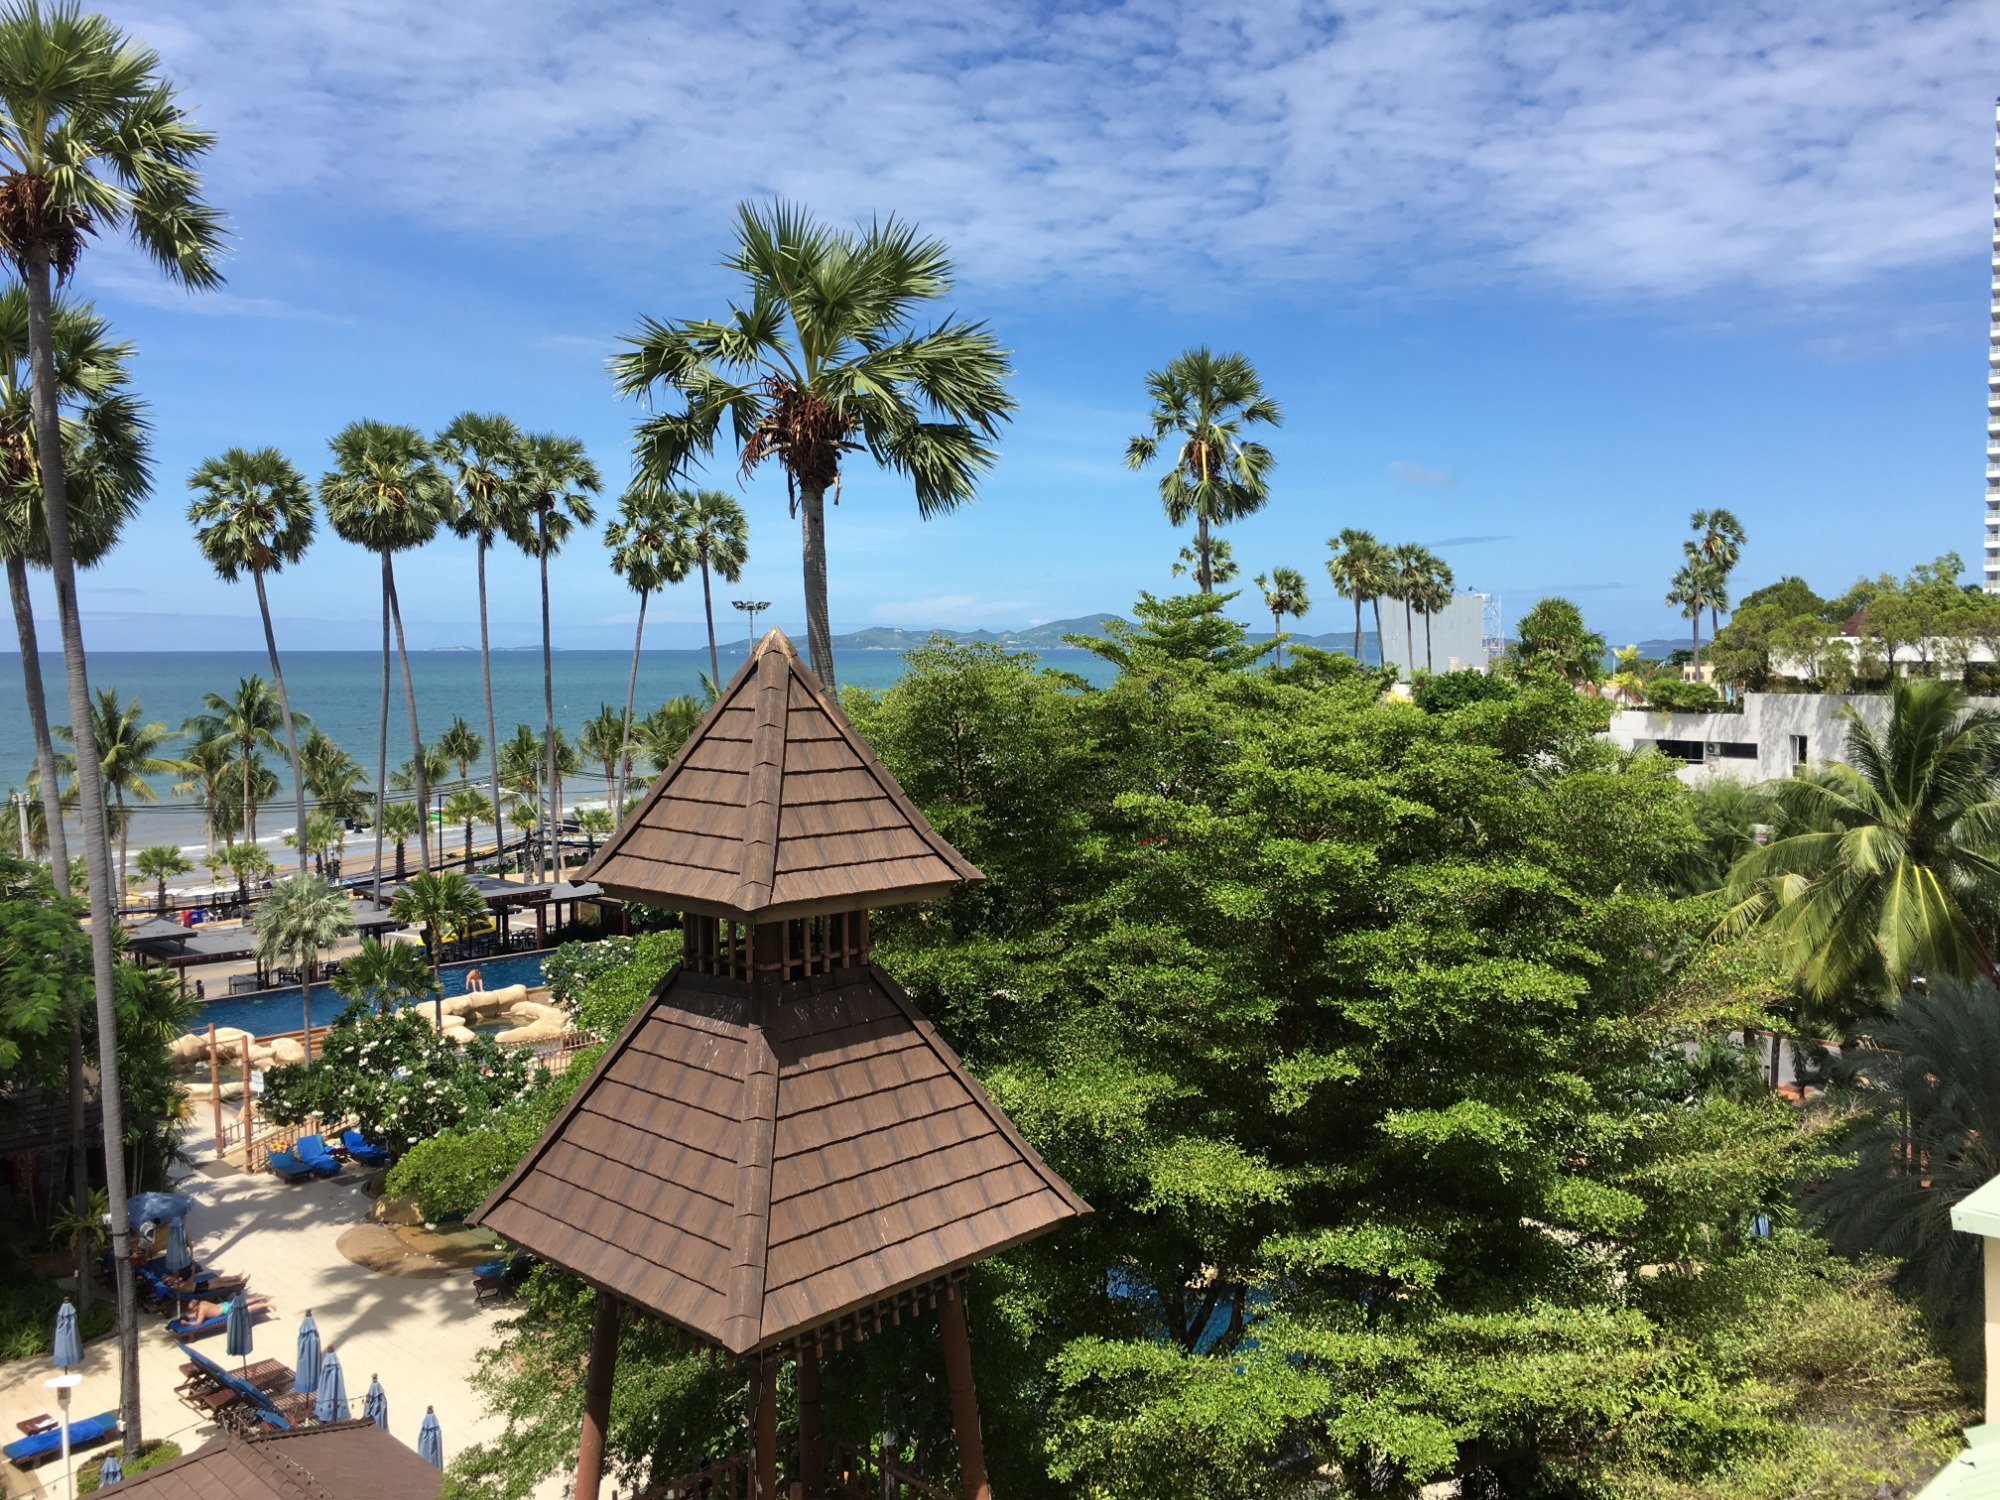 The New Eurostar Jomtien Beach Hotel & Spa